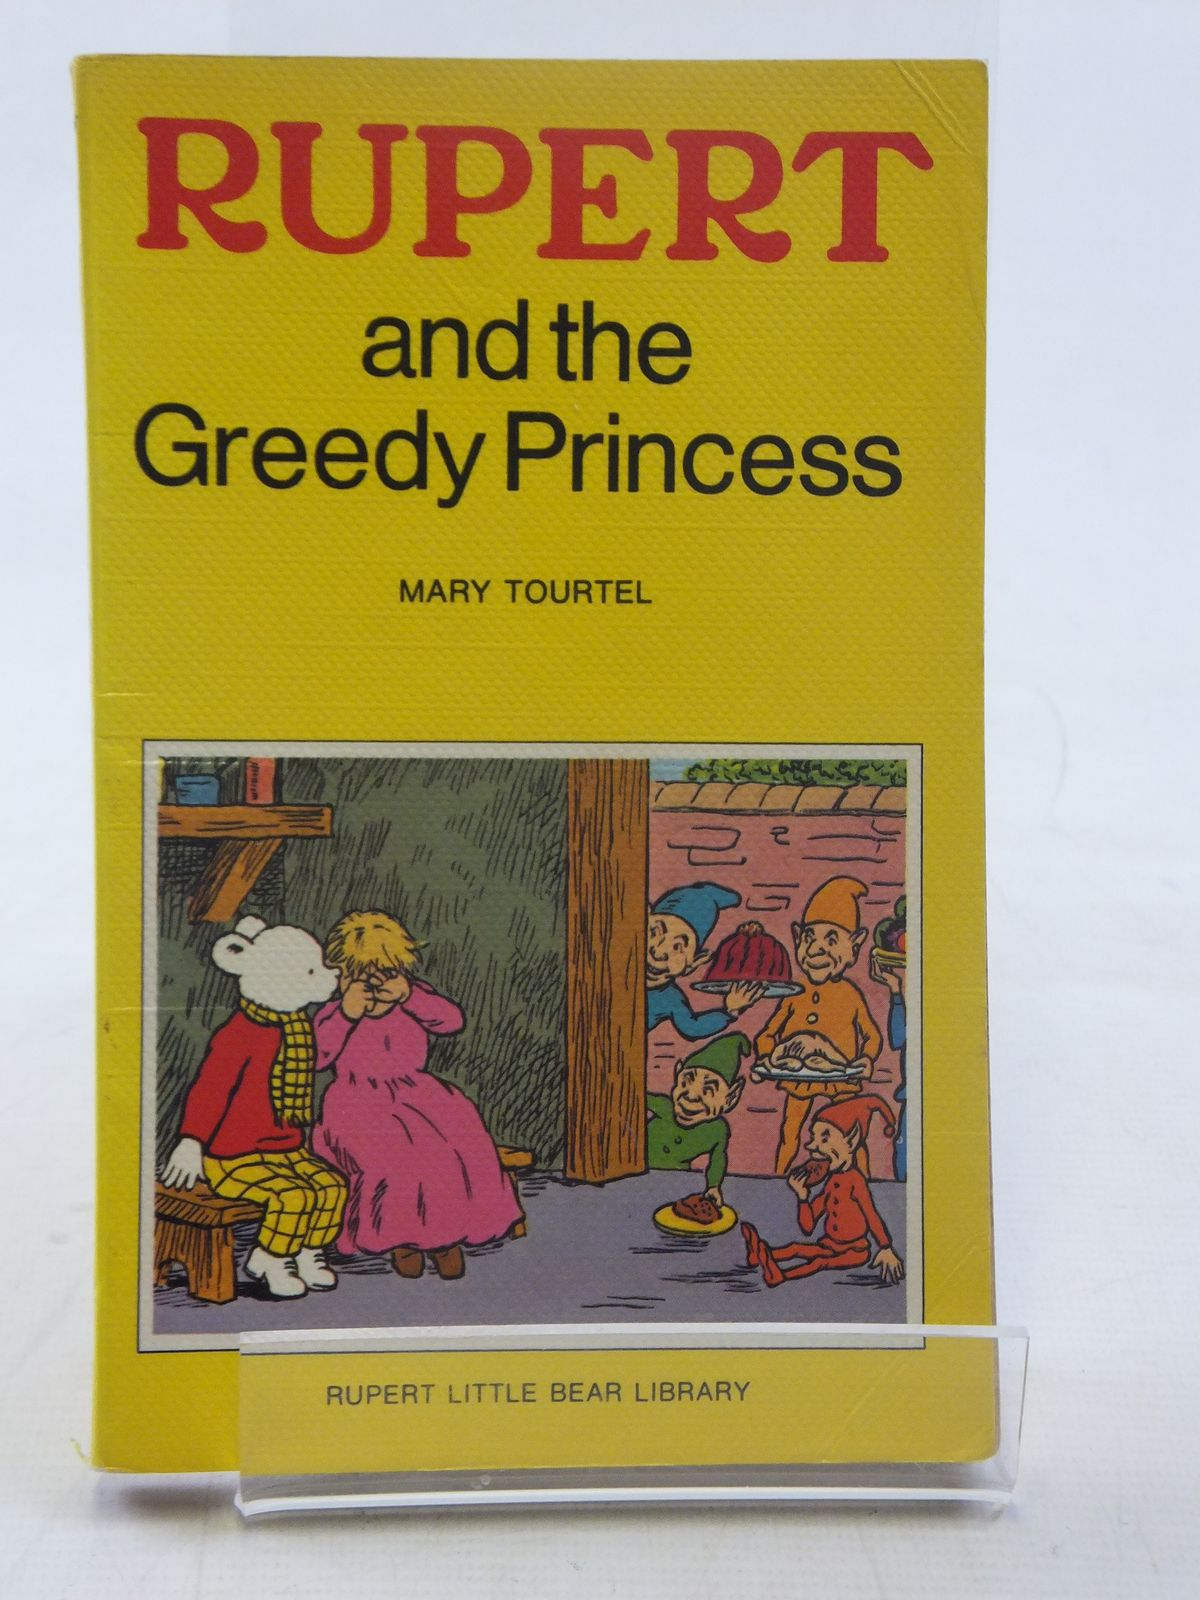 Photo of RUPERT AND THE GREEDY PRINCESS - RUPERT LITTLE BEAR LIBRARY No. 11 (WOOLWORTH) written by Tourtel, Mary illustrated by Tourtel, Mary published by Sampson Low, Marston & Co. Ltd. (STOCK CODE: 2117144)  for sale by Stella & Rose's Books